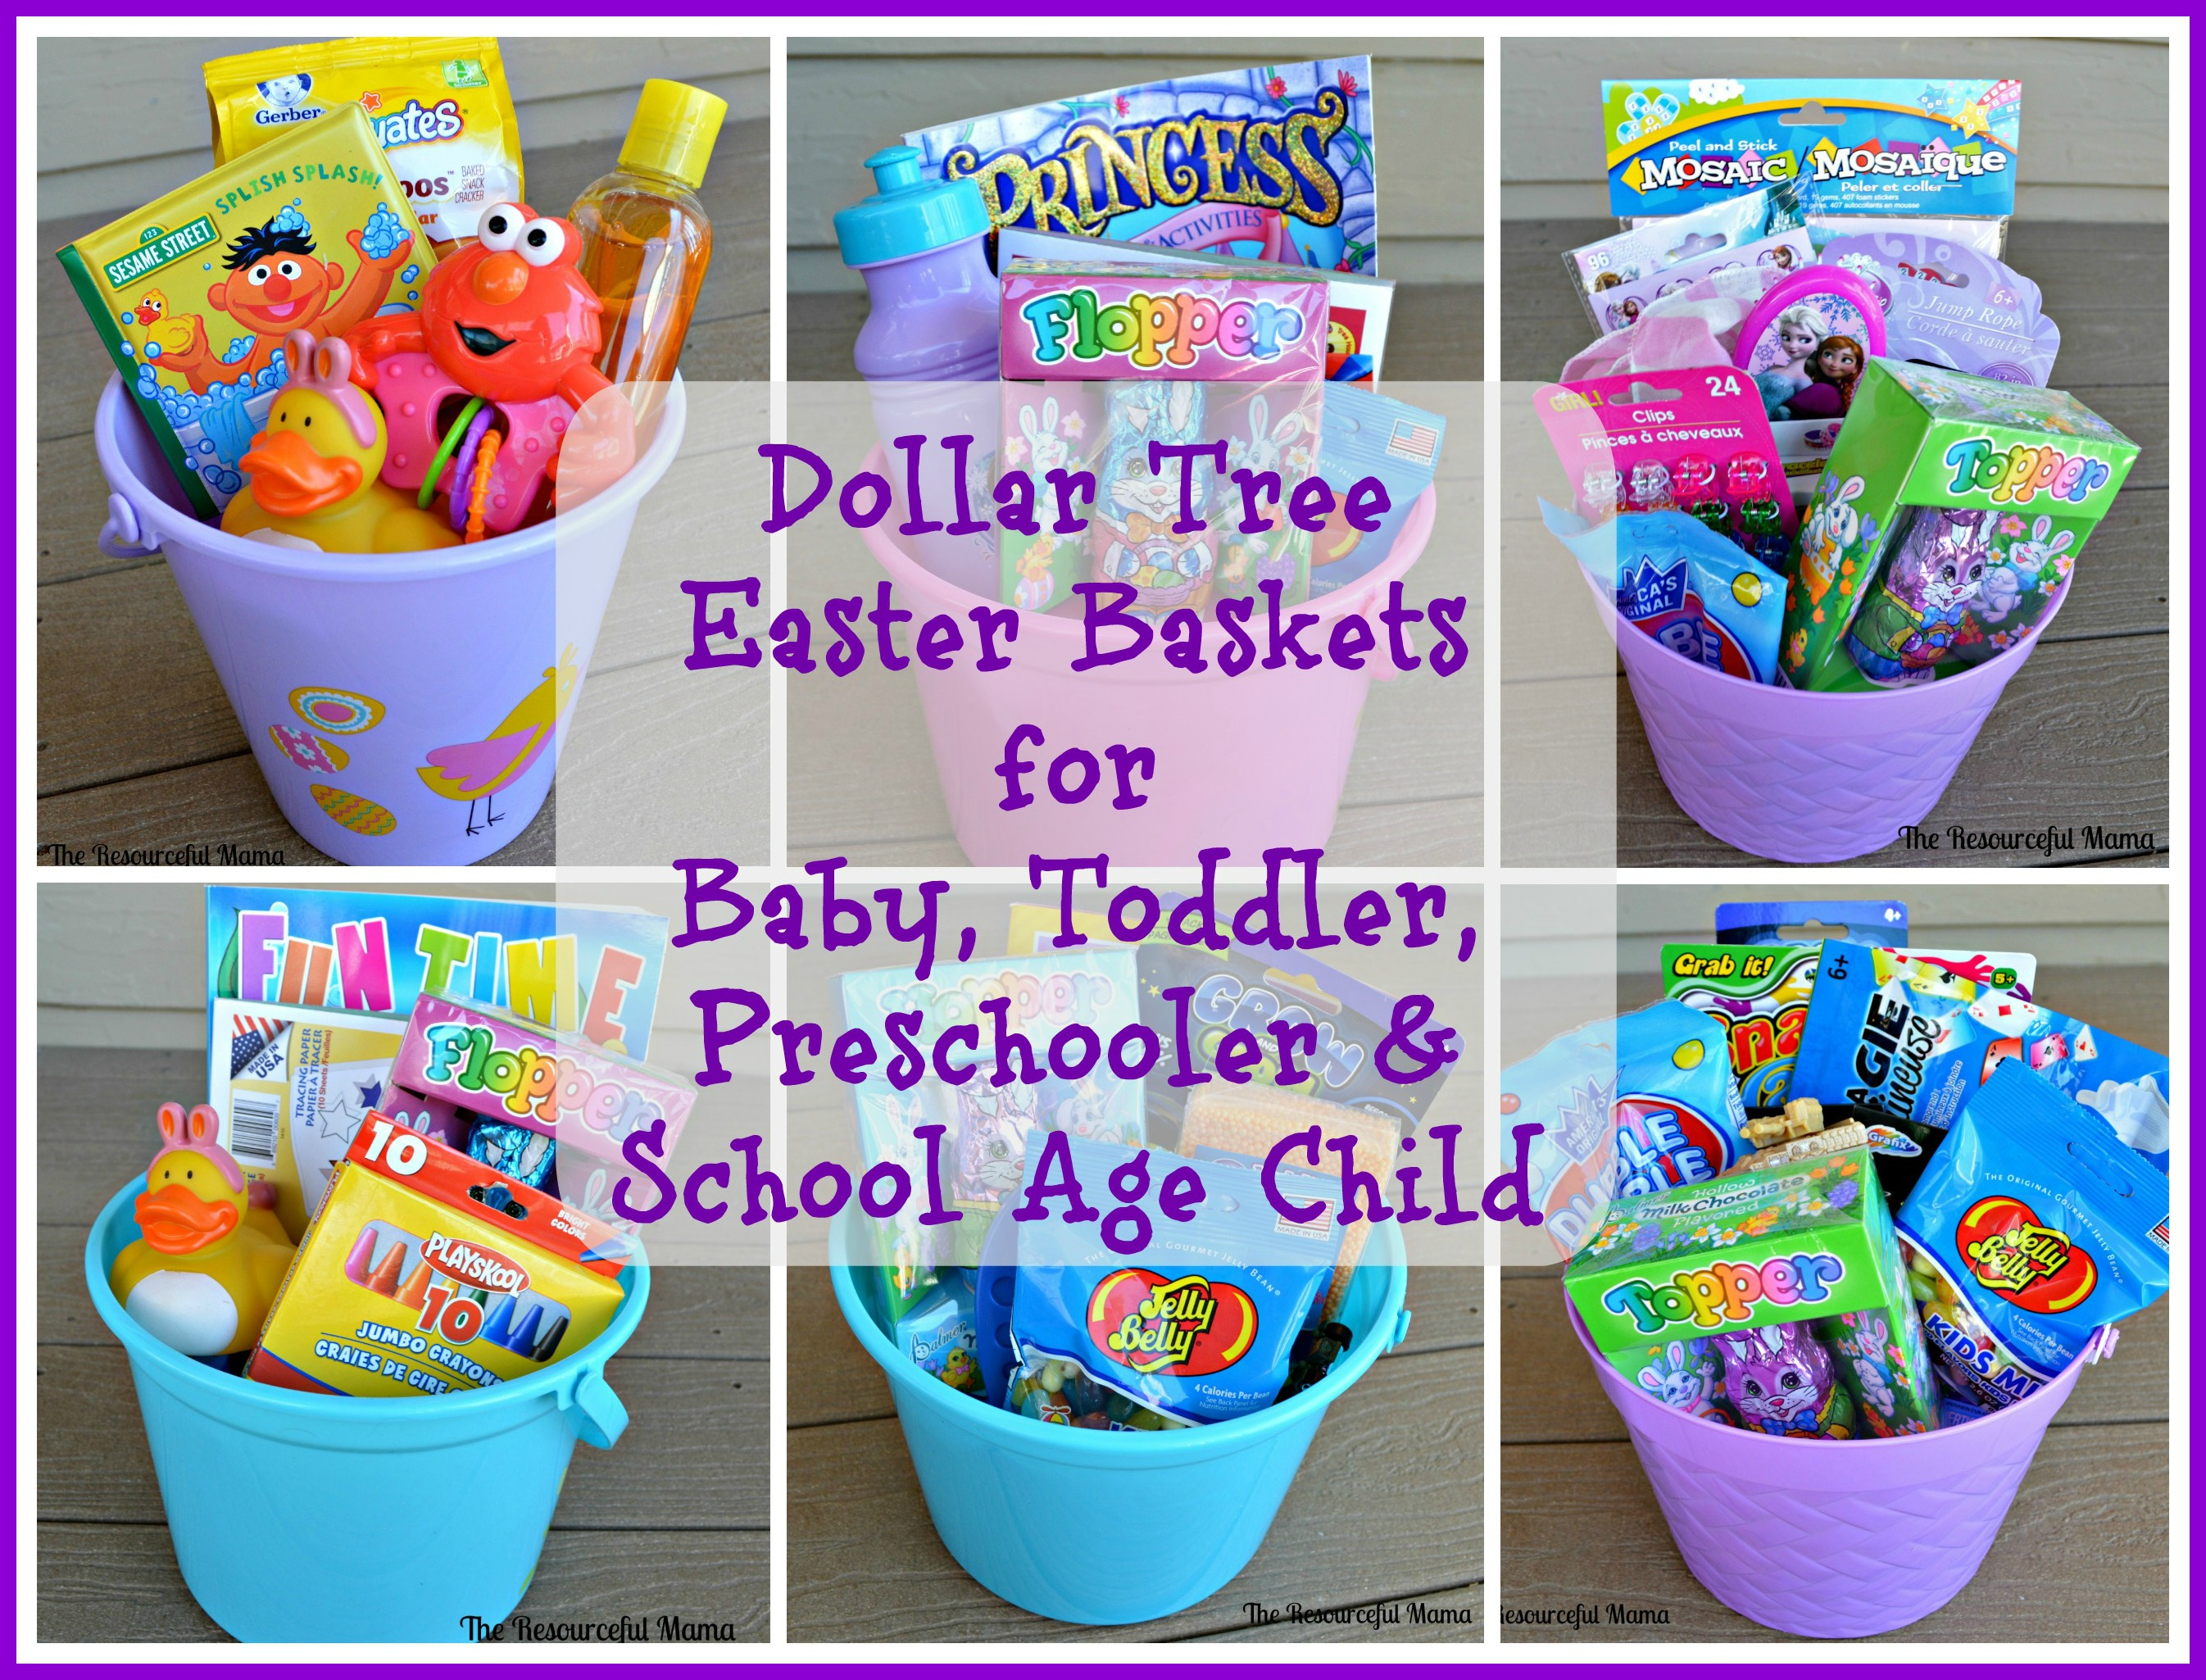 Dollar tree easter baskets the resourceful mama dollar tree easter basket for baby toddler preschooler school age child negle Choice Image